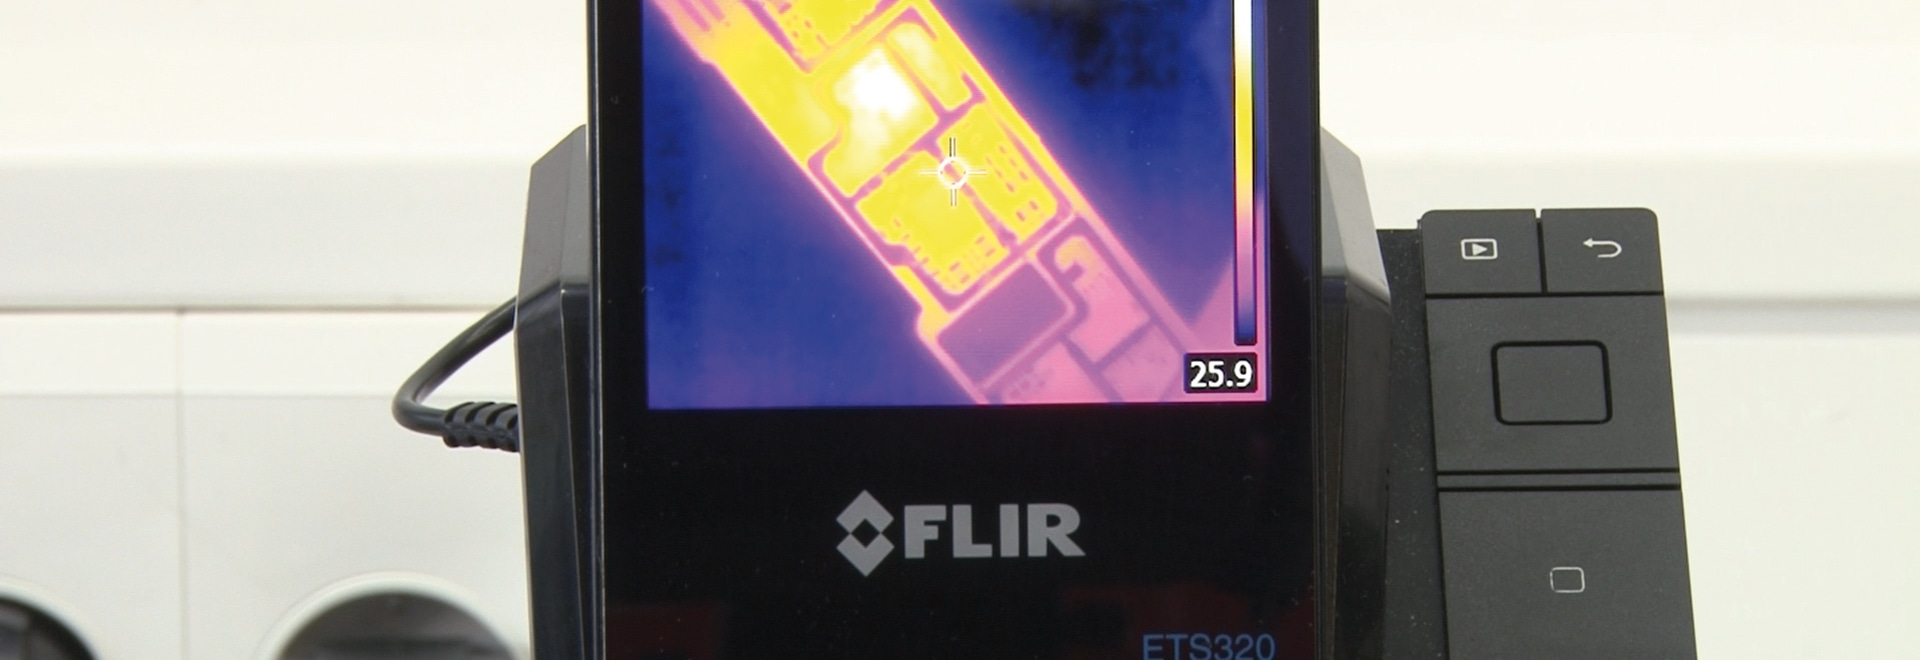 Thermal Imaging Speeds Up Repair of Printed Circuit Boards